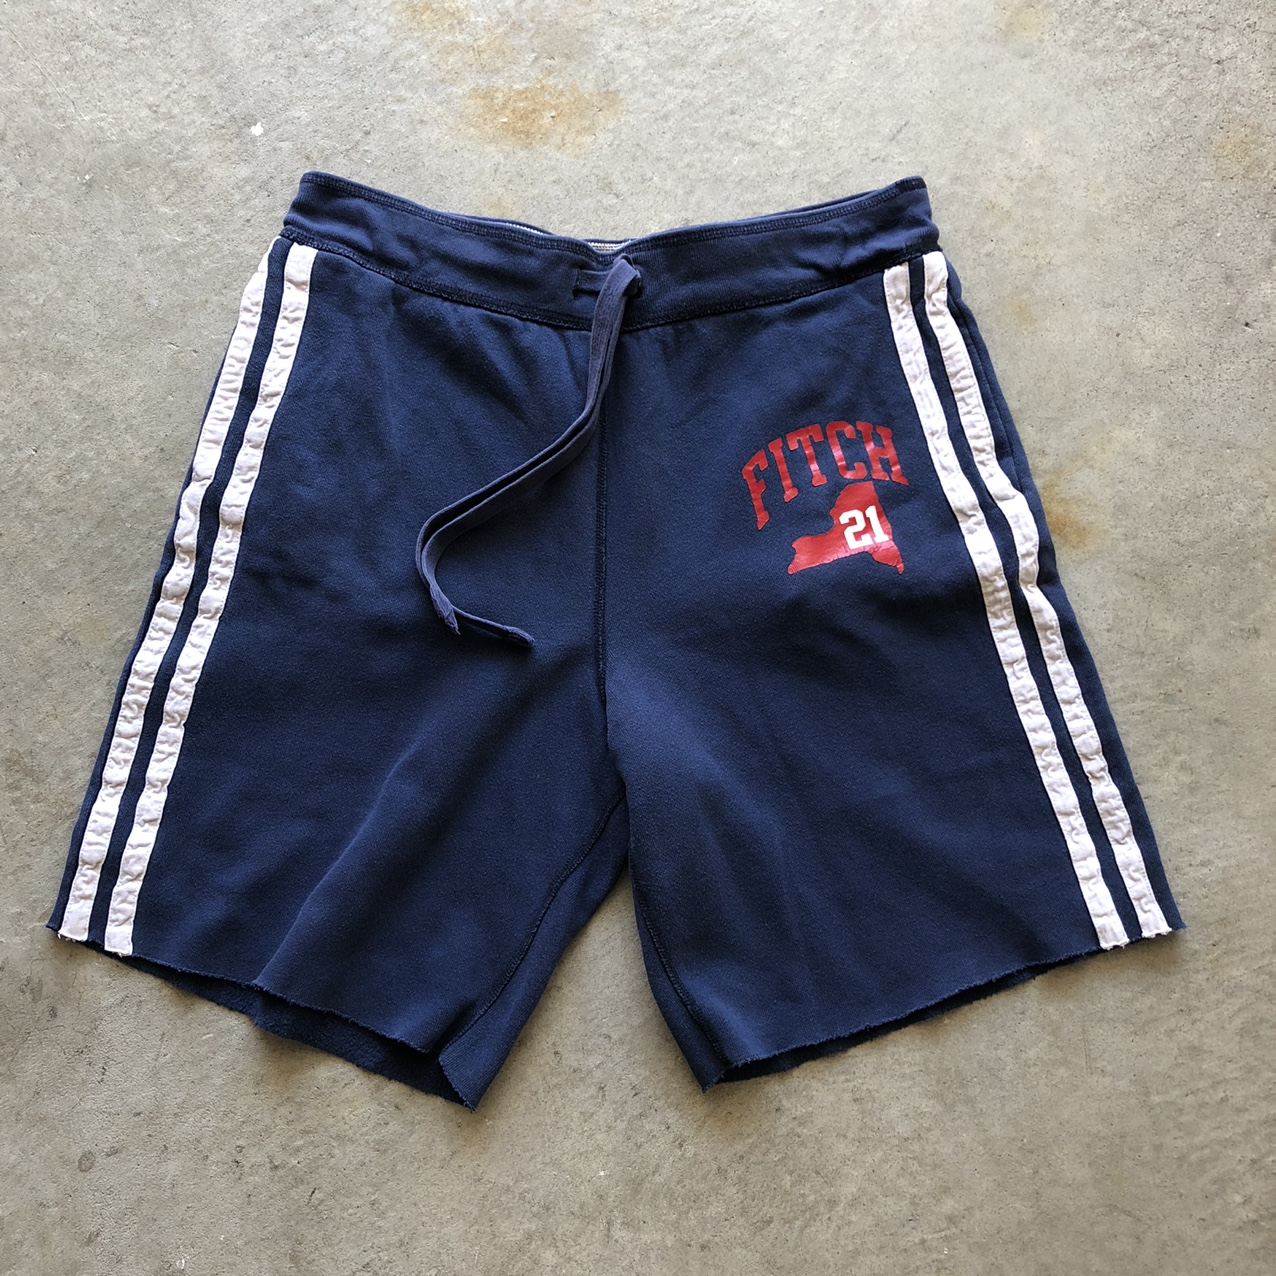 Product Image 1 - vintage abercrombie and fitch varsity/collegiate